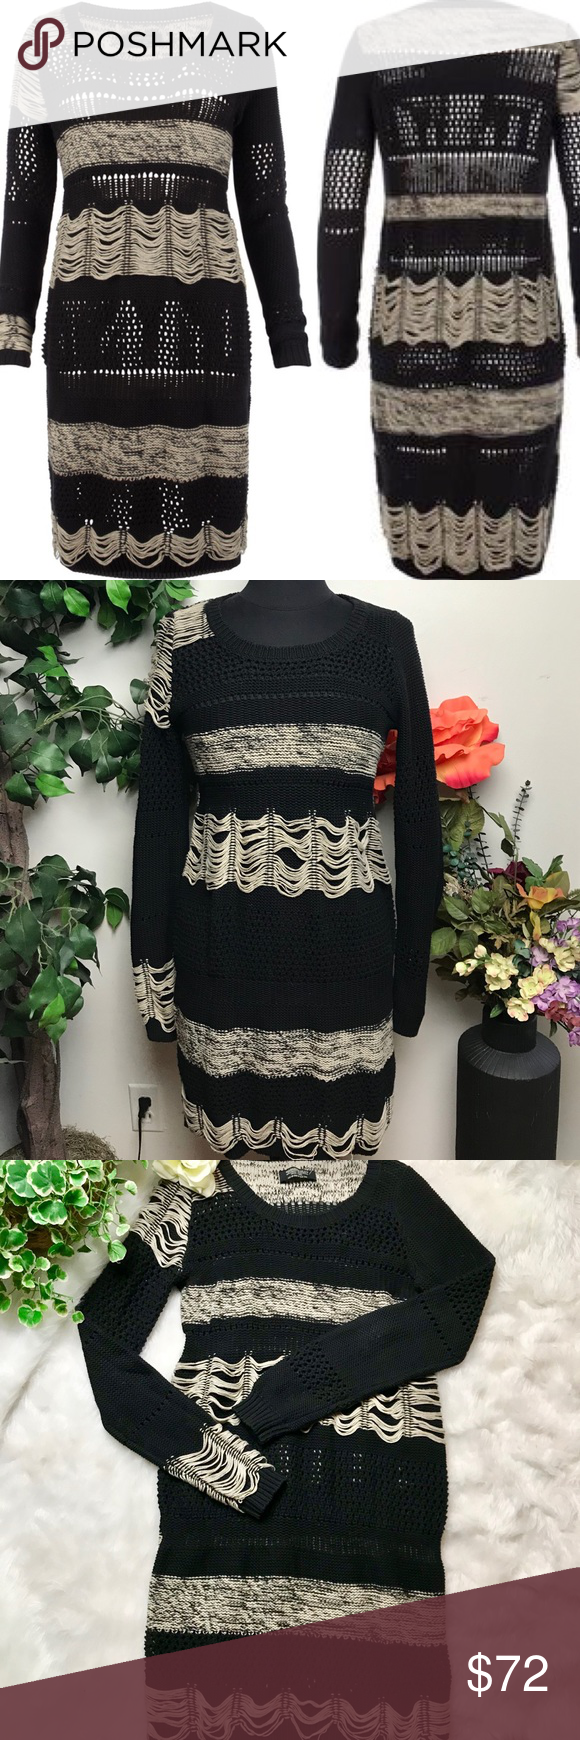 All Saints Black Cream Knitted Sweater Dress 6 (With images